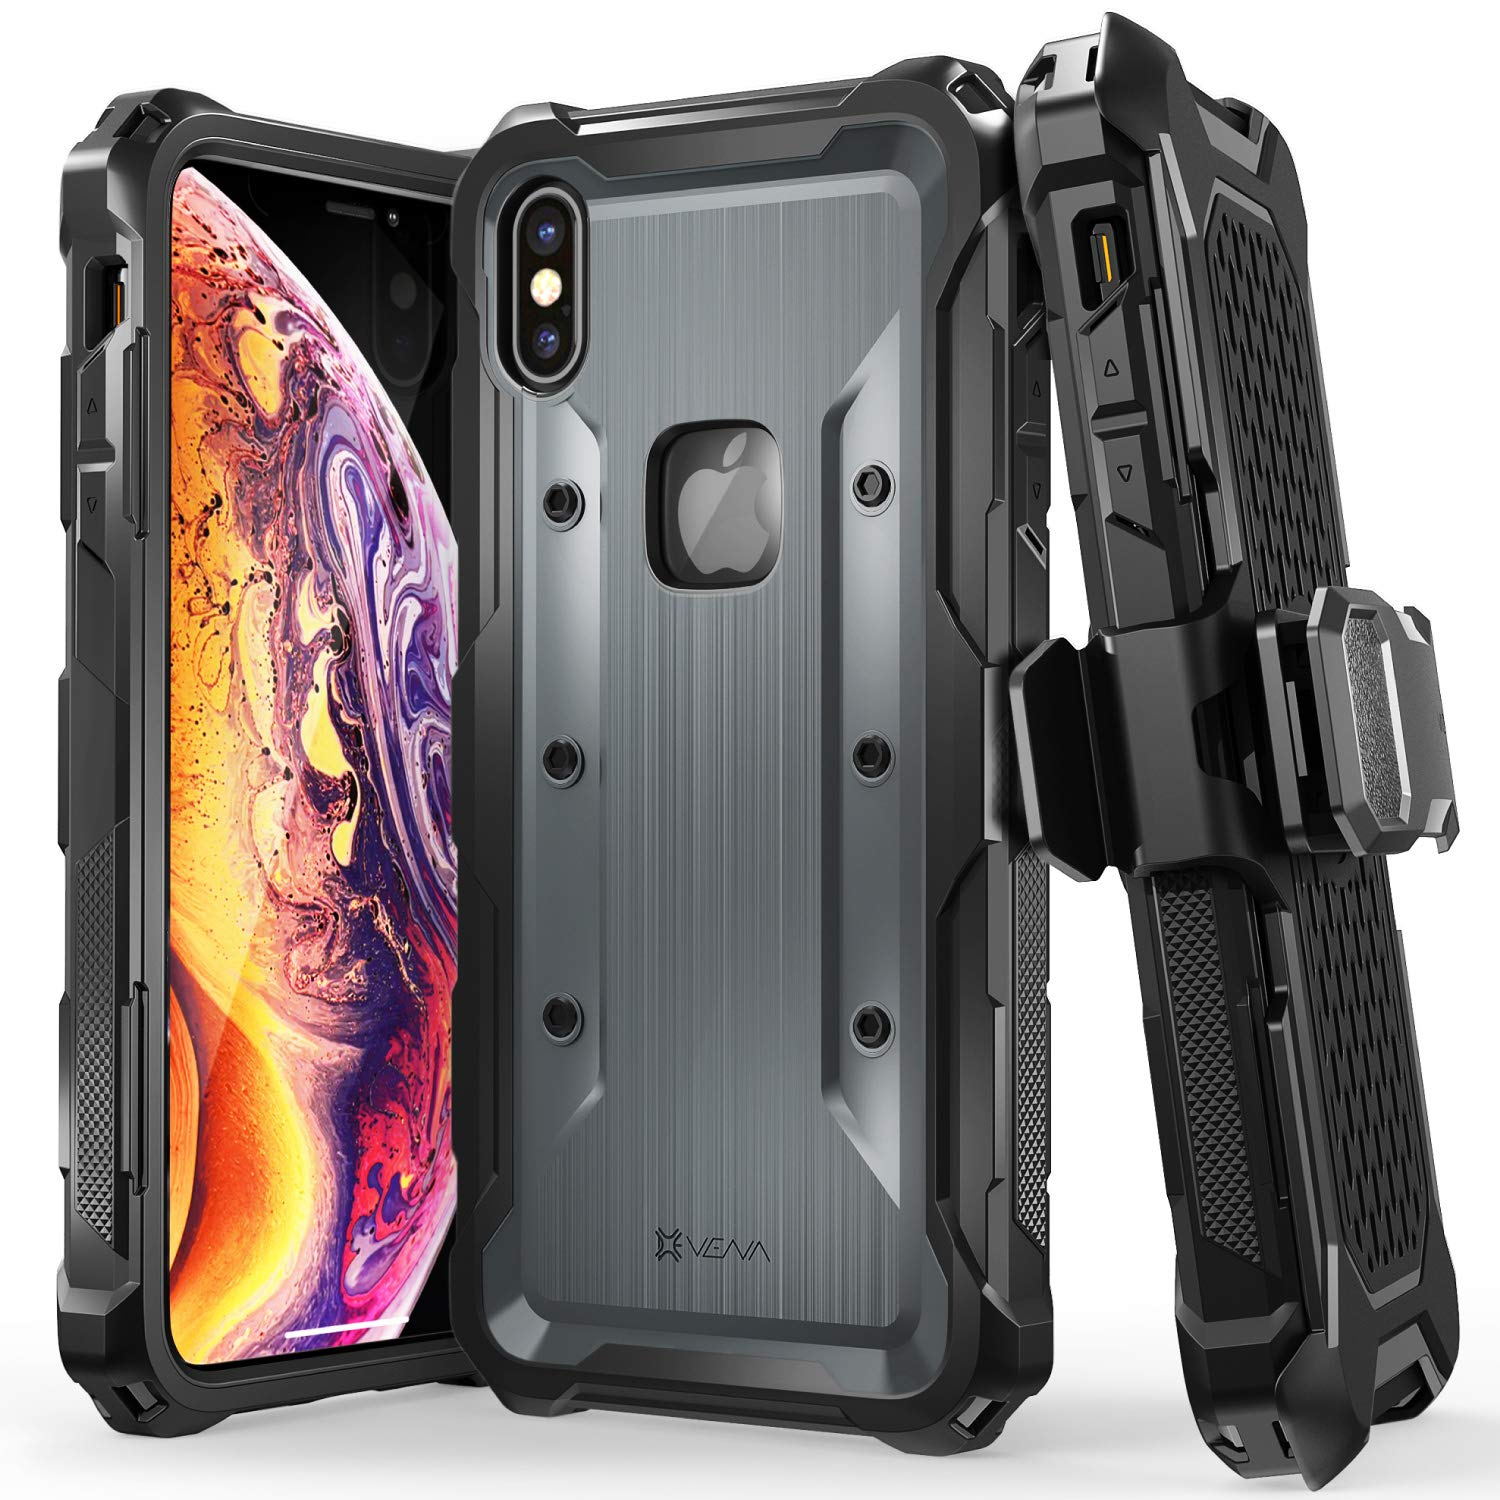 Cases and Accessories for Galaxy S10+, Galaxy S10, iPhone XS Max, iPhone XR and More Starting From $2.00